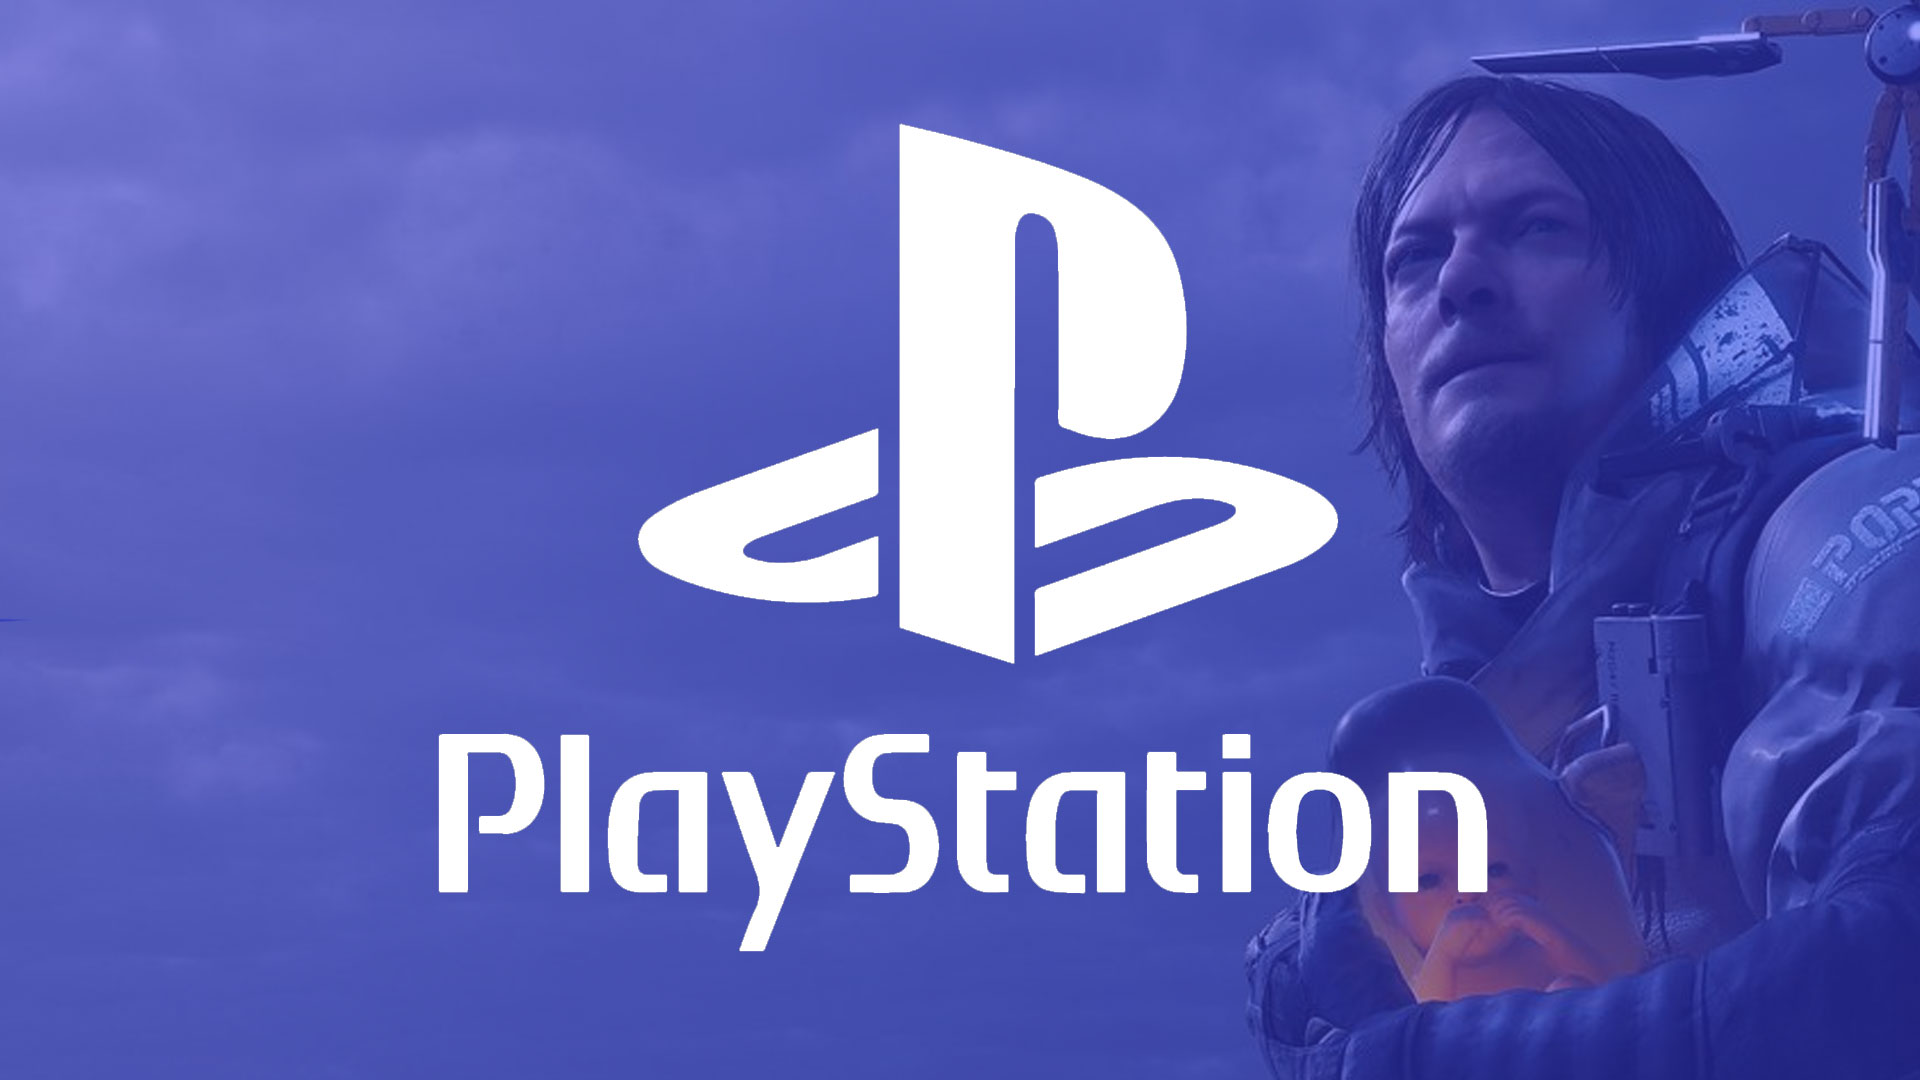 PlayStation E3 2019: Sony is skipping E3 2019, but does that mean